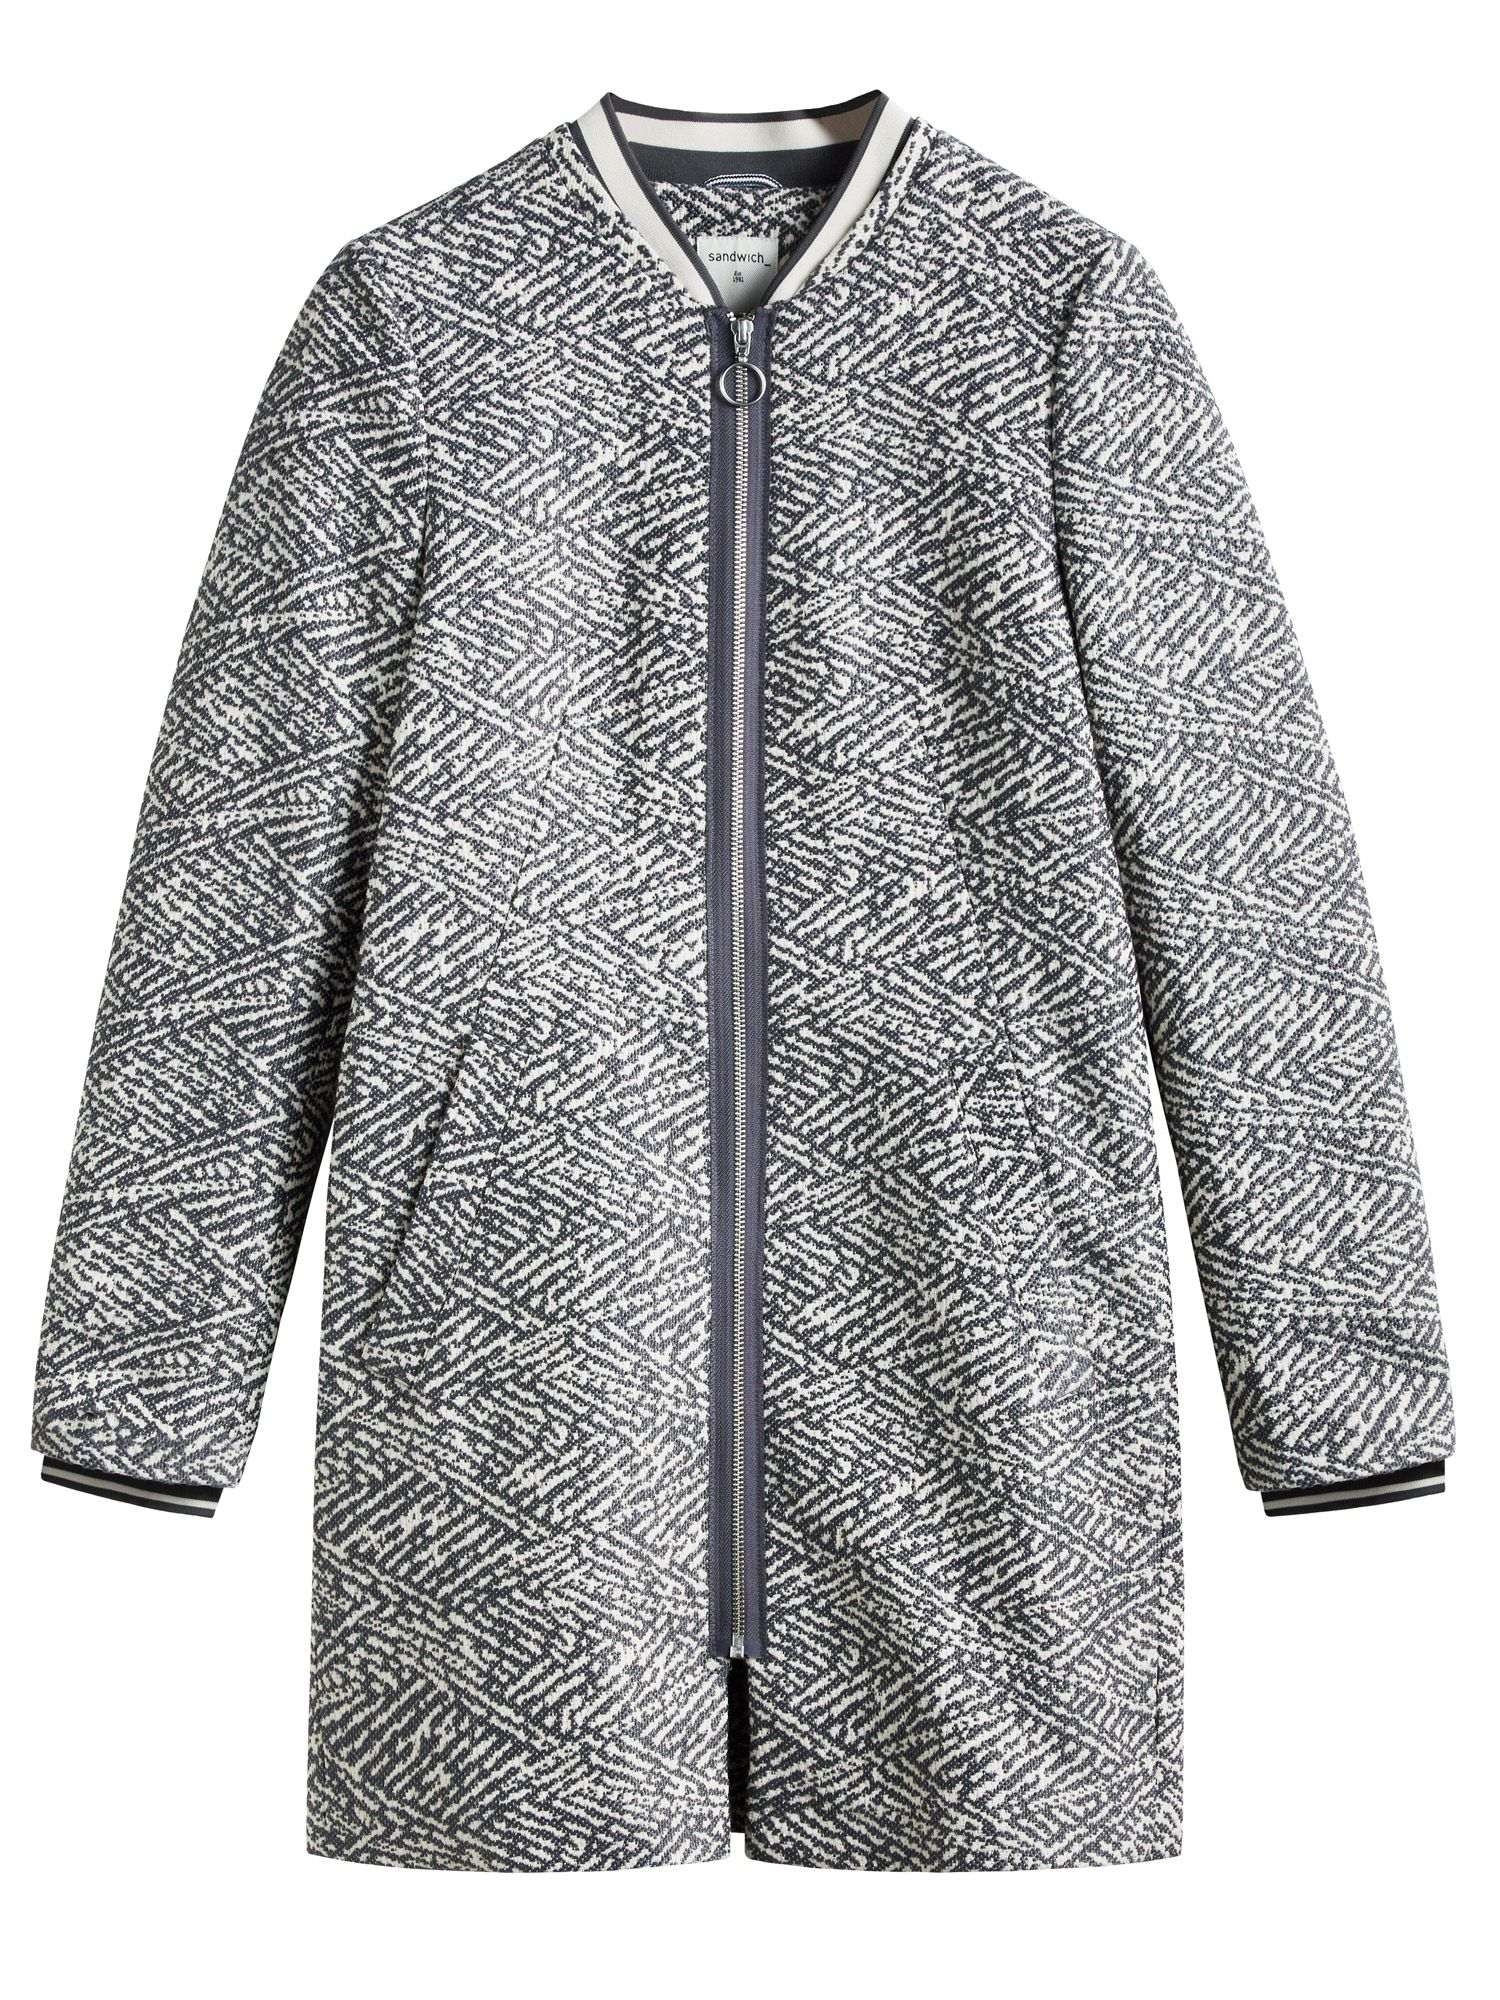 Sandwich Jacquard coat, Grey